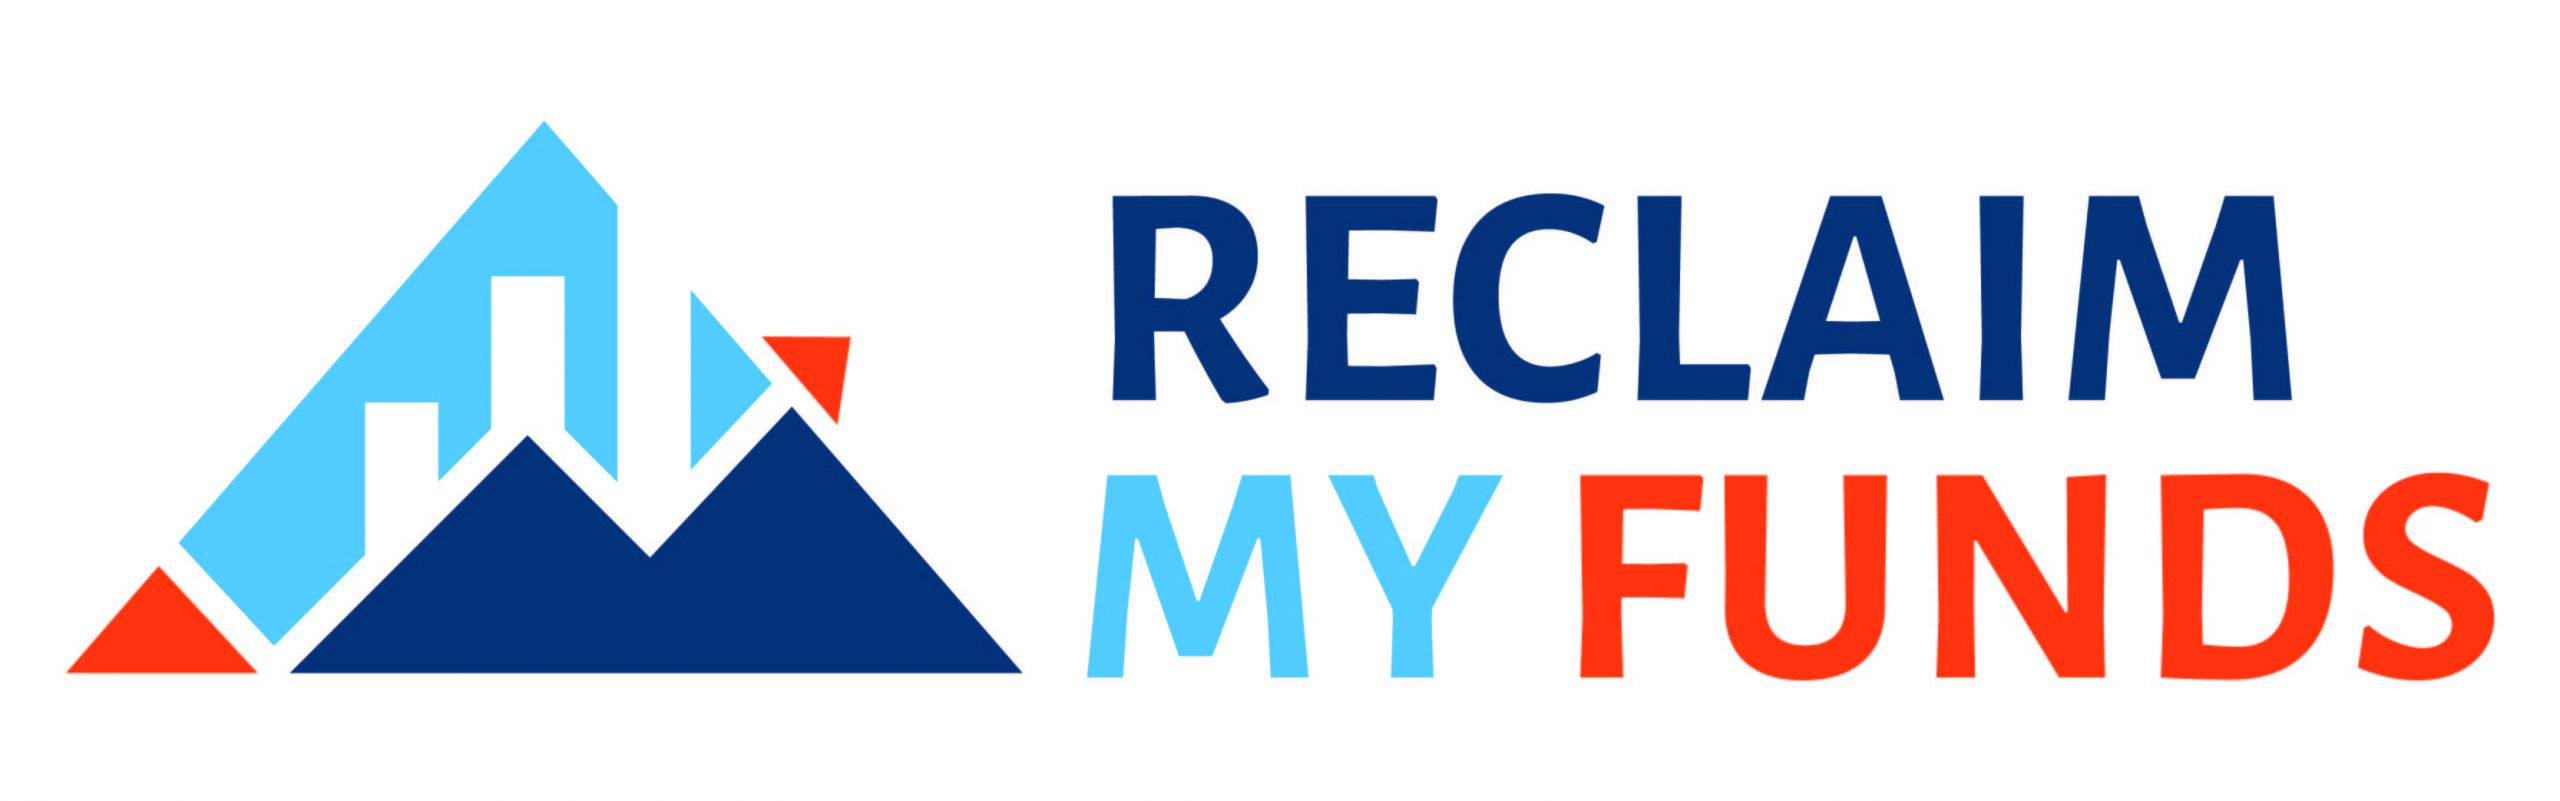 ReclaimMyFunds - Fund Recovery Consultancy for Forex and Bitcoin Scams